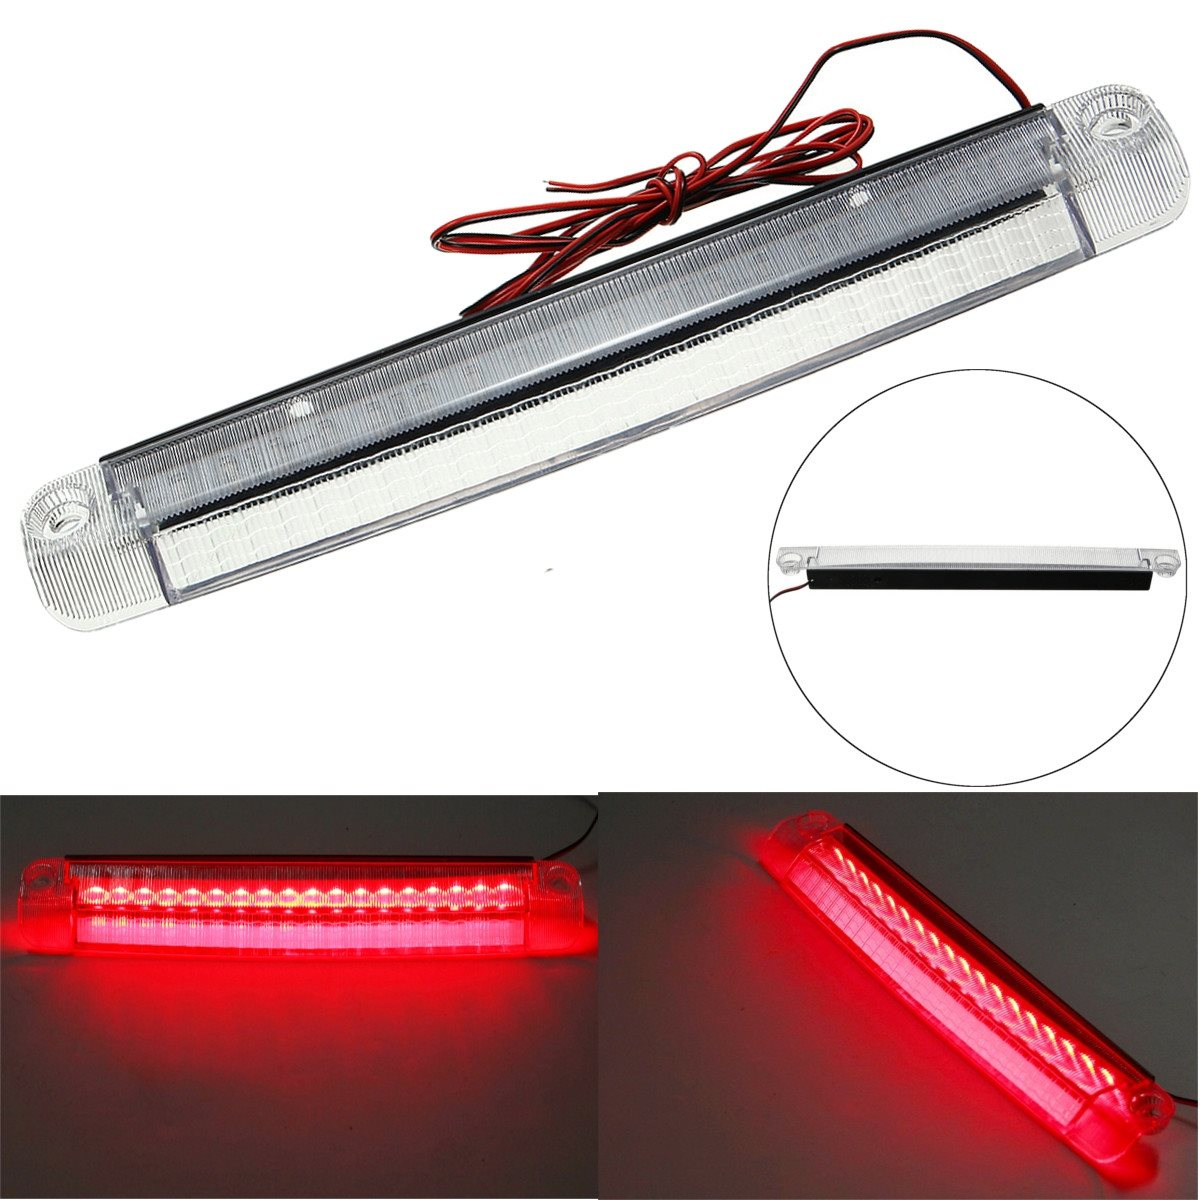 Unverisal 12V 5W Car 18 LED Car Reversing Lights Rear Tail Third Brake Stop Light High Mount Lamp Red 1210 24 led third brake tail light for vehicles dc 12v